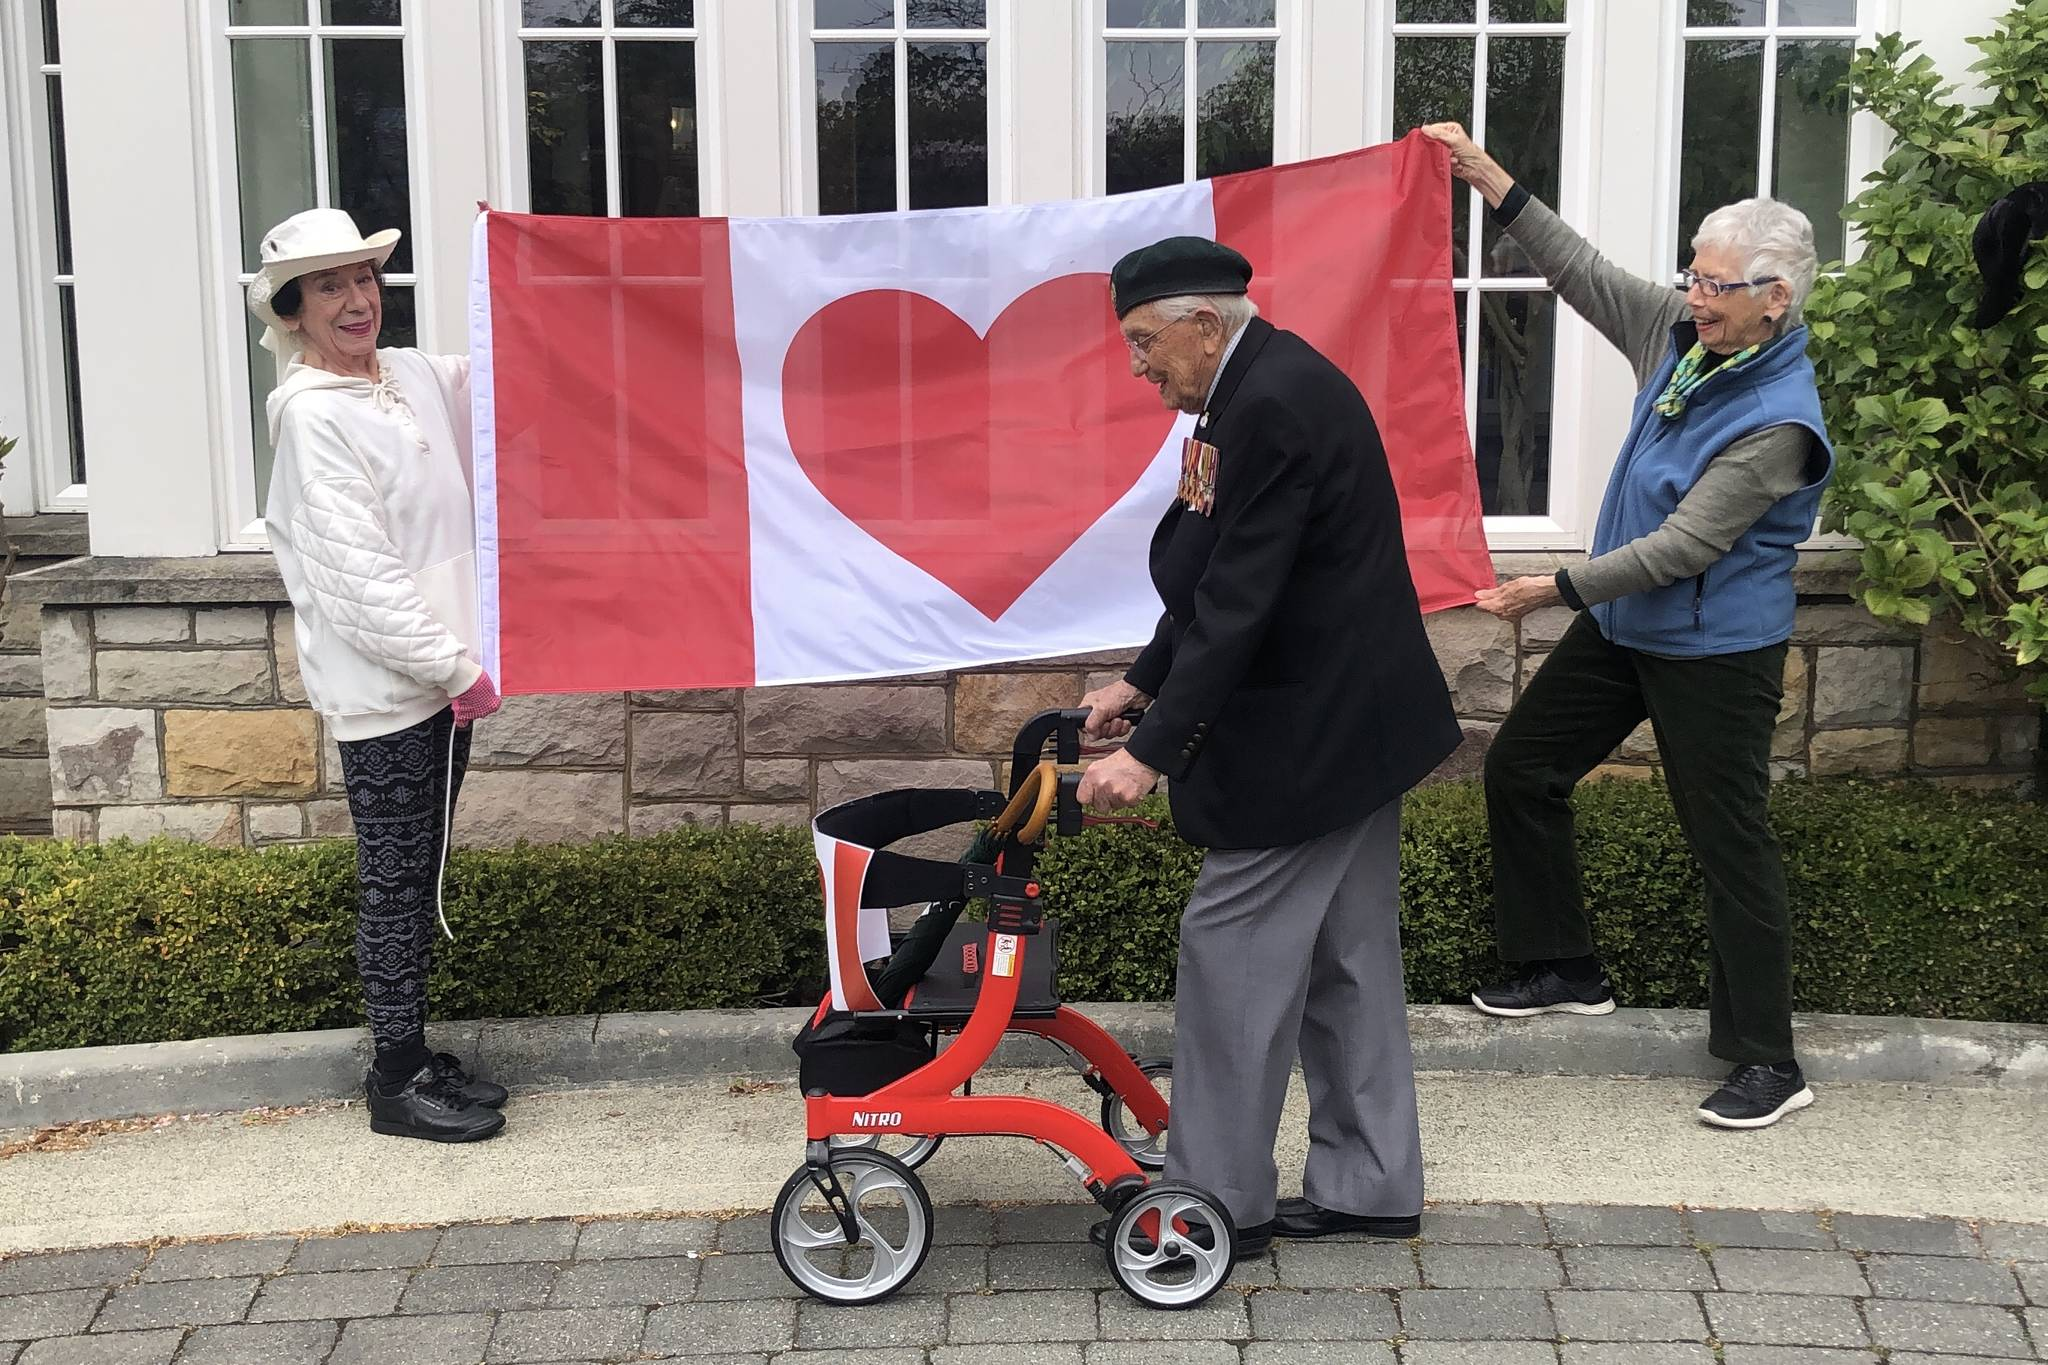 Oak Bay resident John Hillman is walking 101 laps around the Carlton House driveway to raise money and awareness for Save the Children Canada. The veteran of the Second World War is doing five laps a day for 20 days, inspired by Capt. Tom Moore in England who did 100 laps of his garden. (Travis Paterson/News Staff)